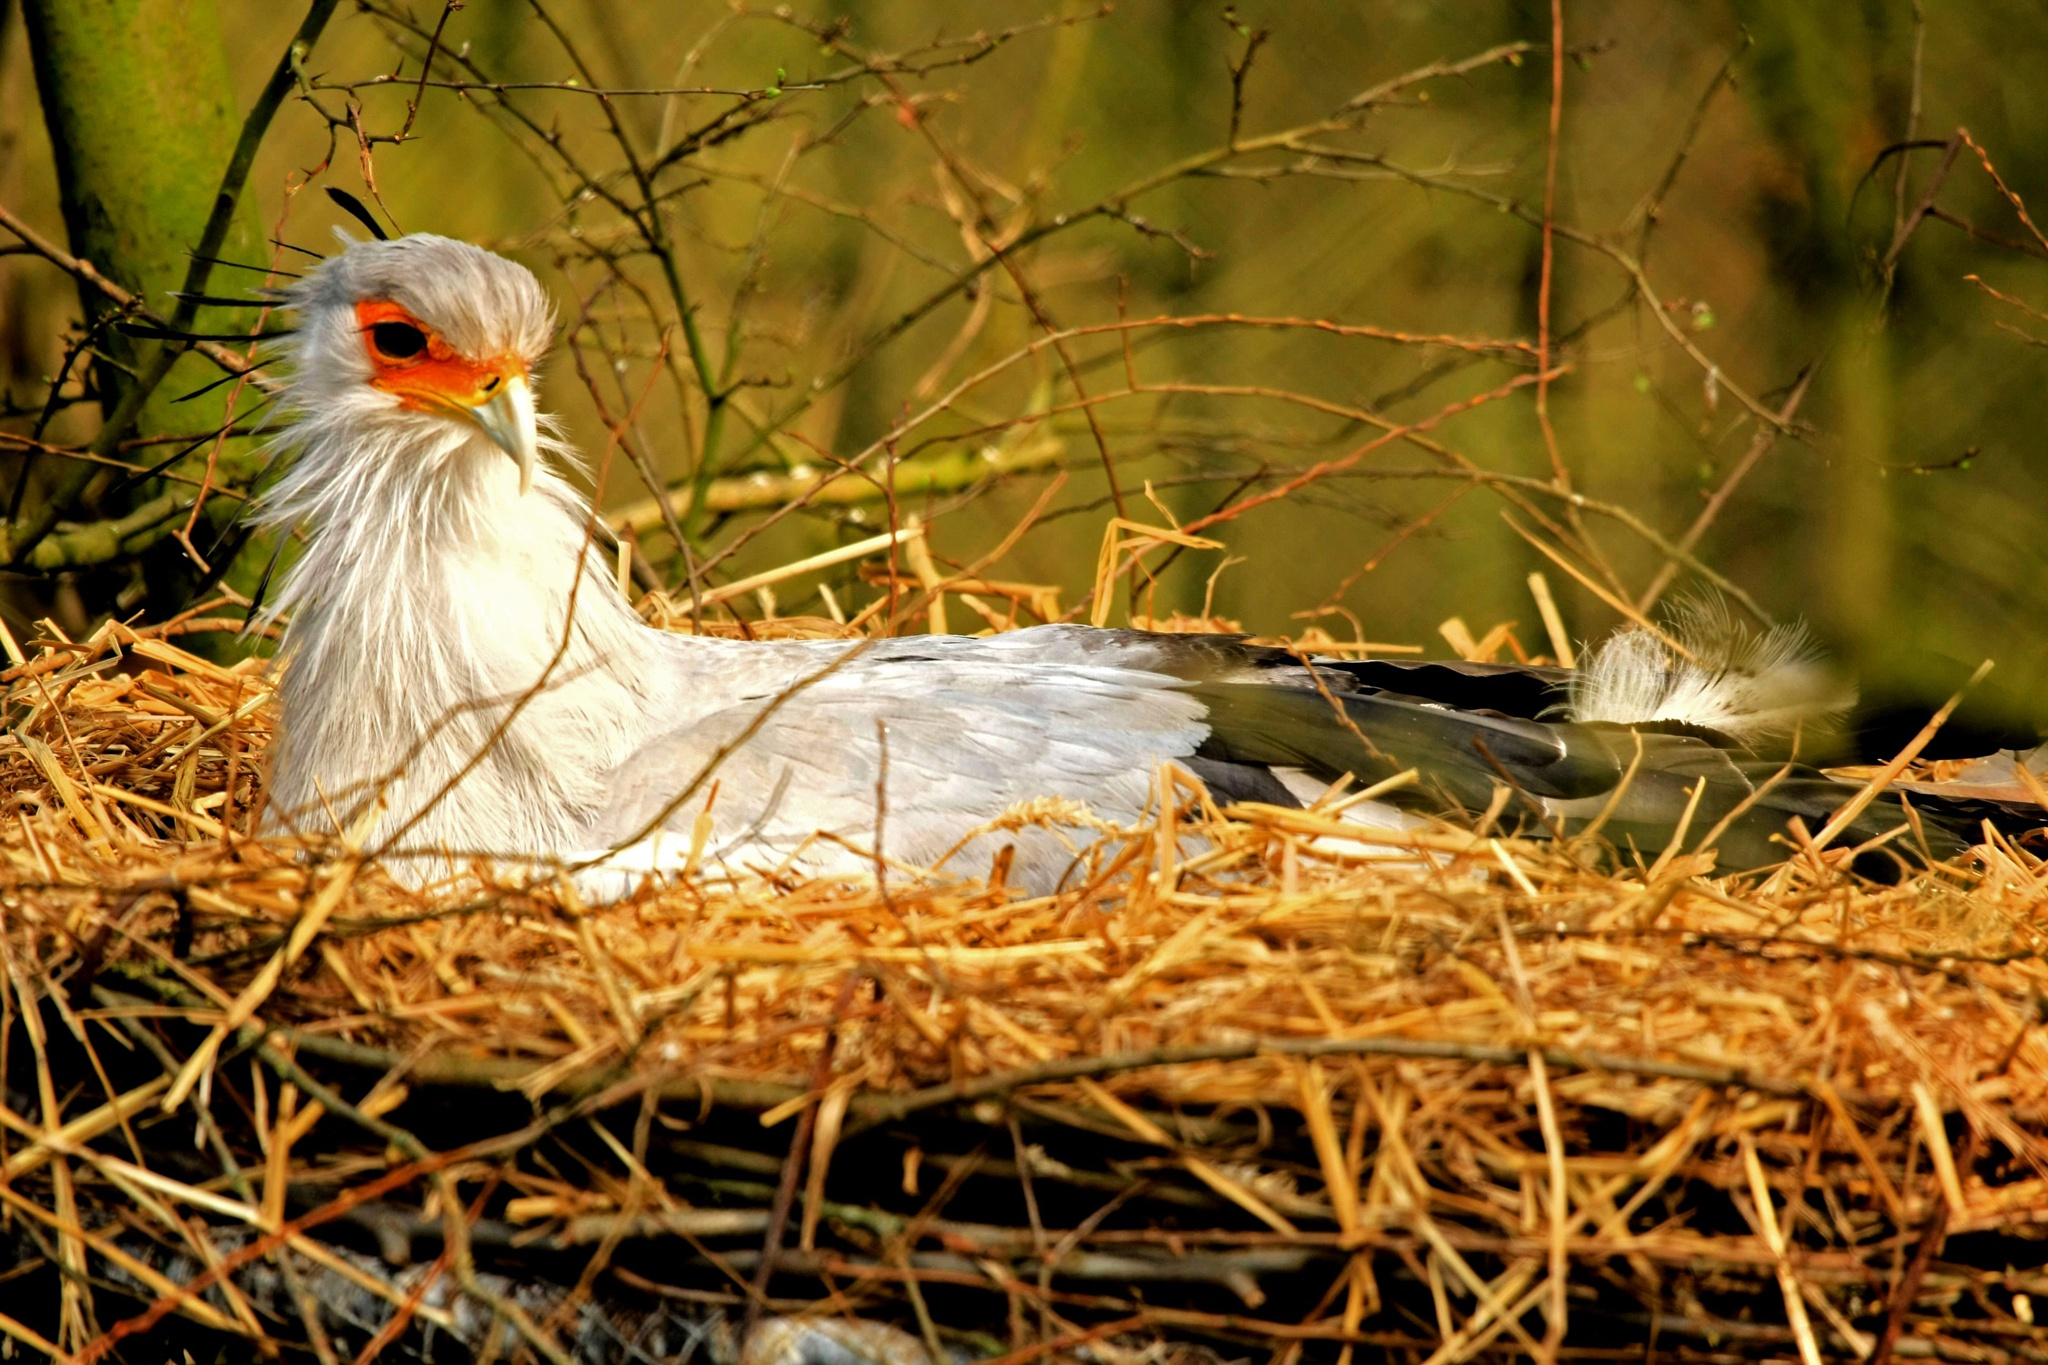 Secretary bird on nest by Bob66